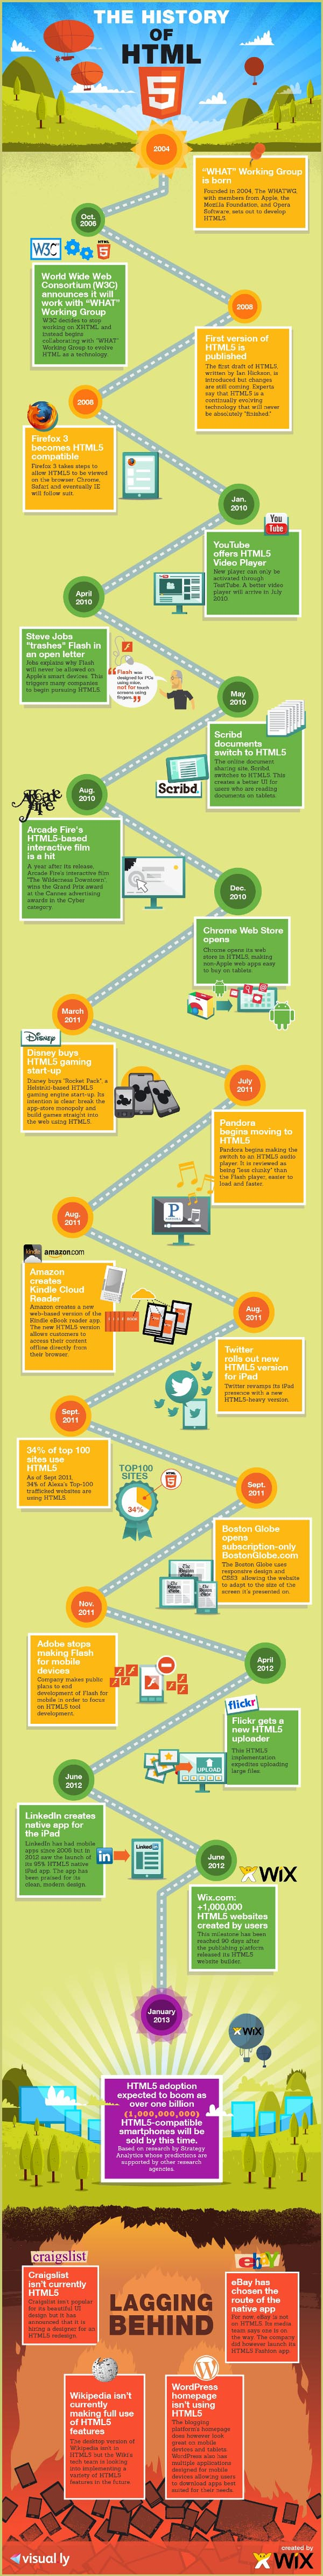 the history of html5 The History of HTML5 [Infographic]